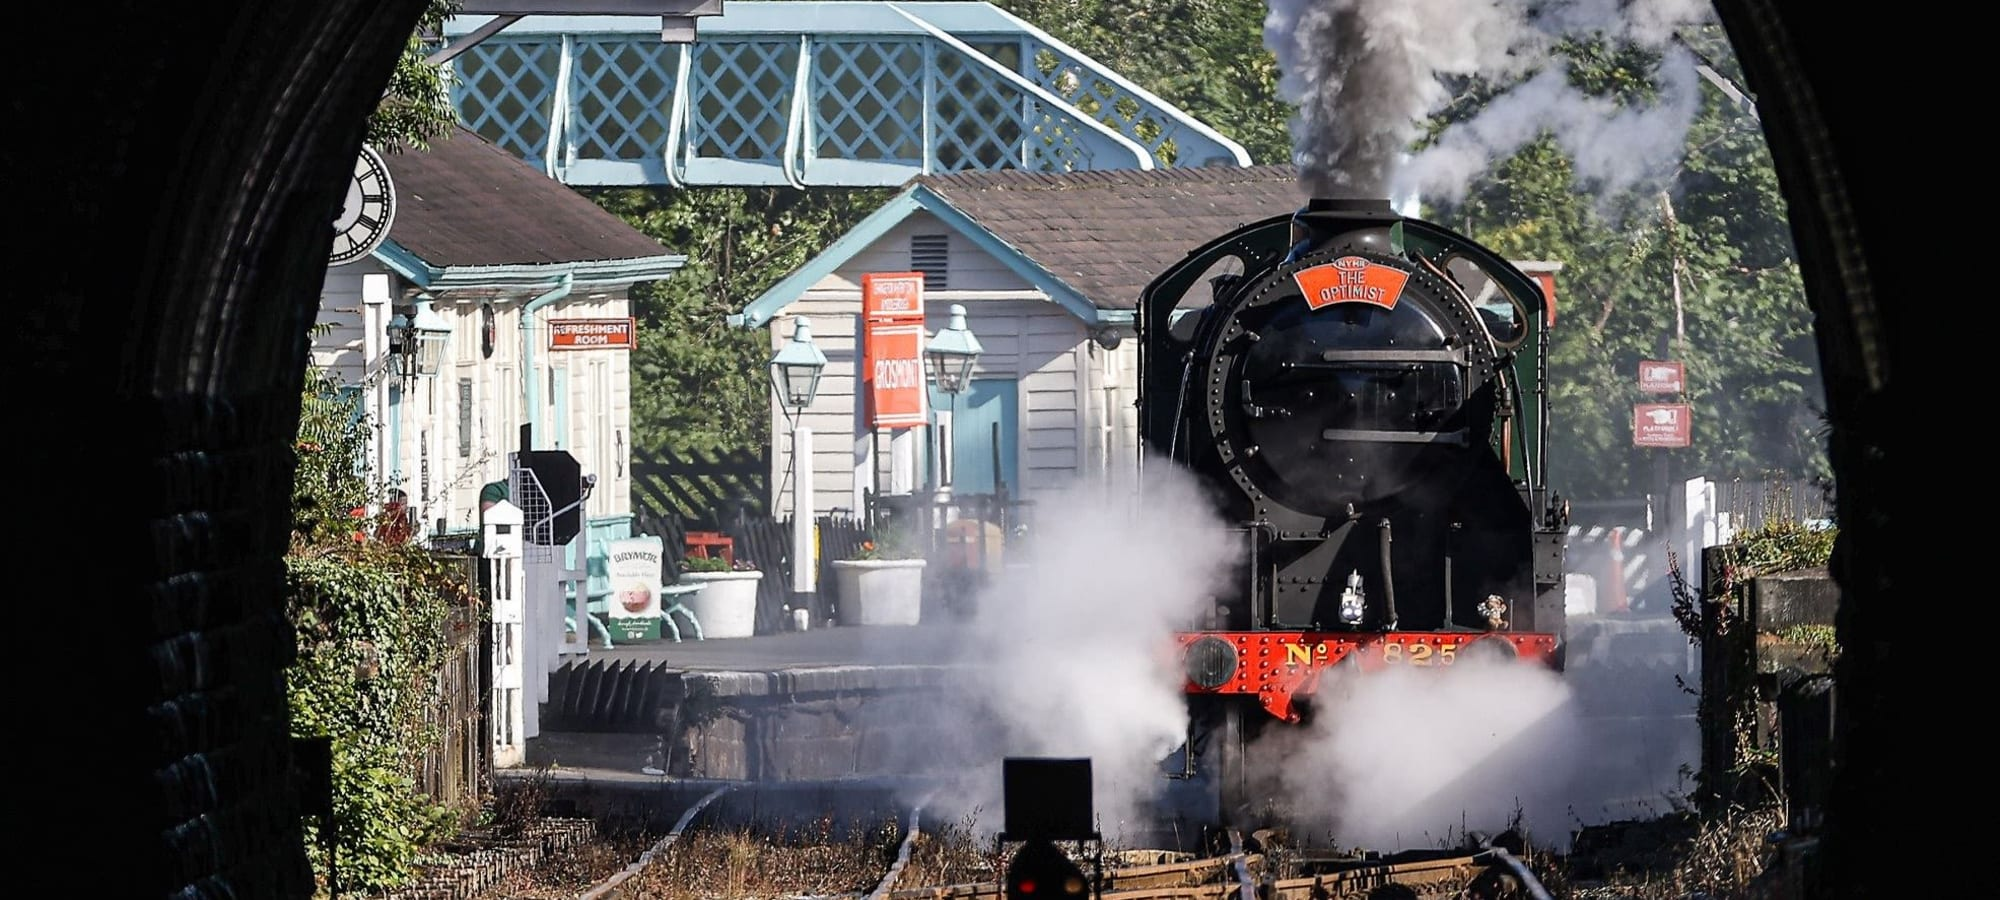 NYMR receives grant from Government's Culture Recovery Fund